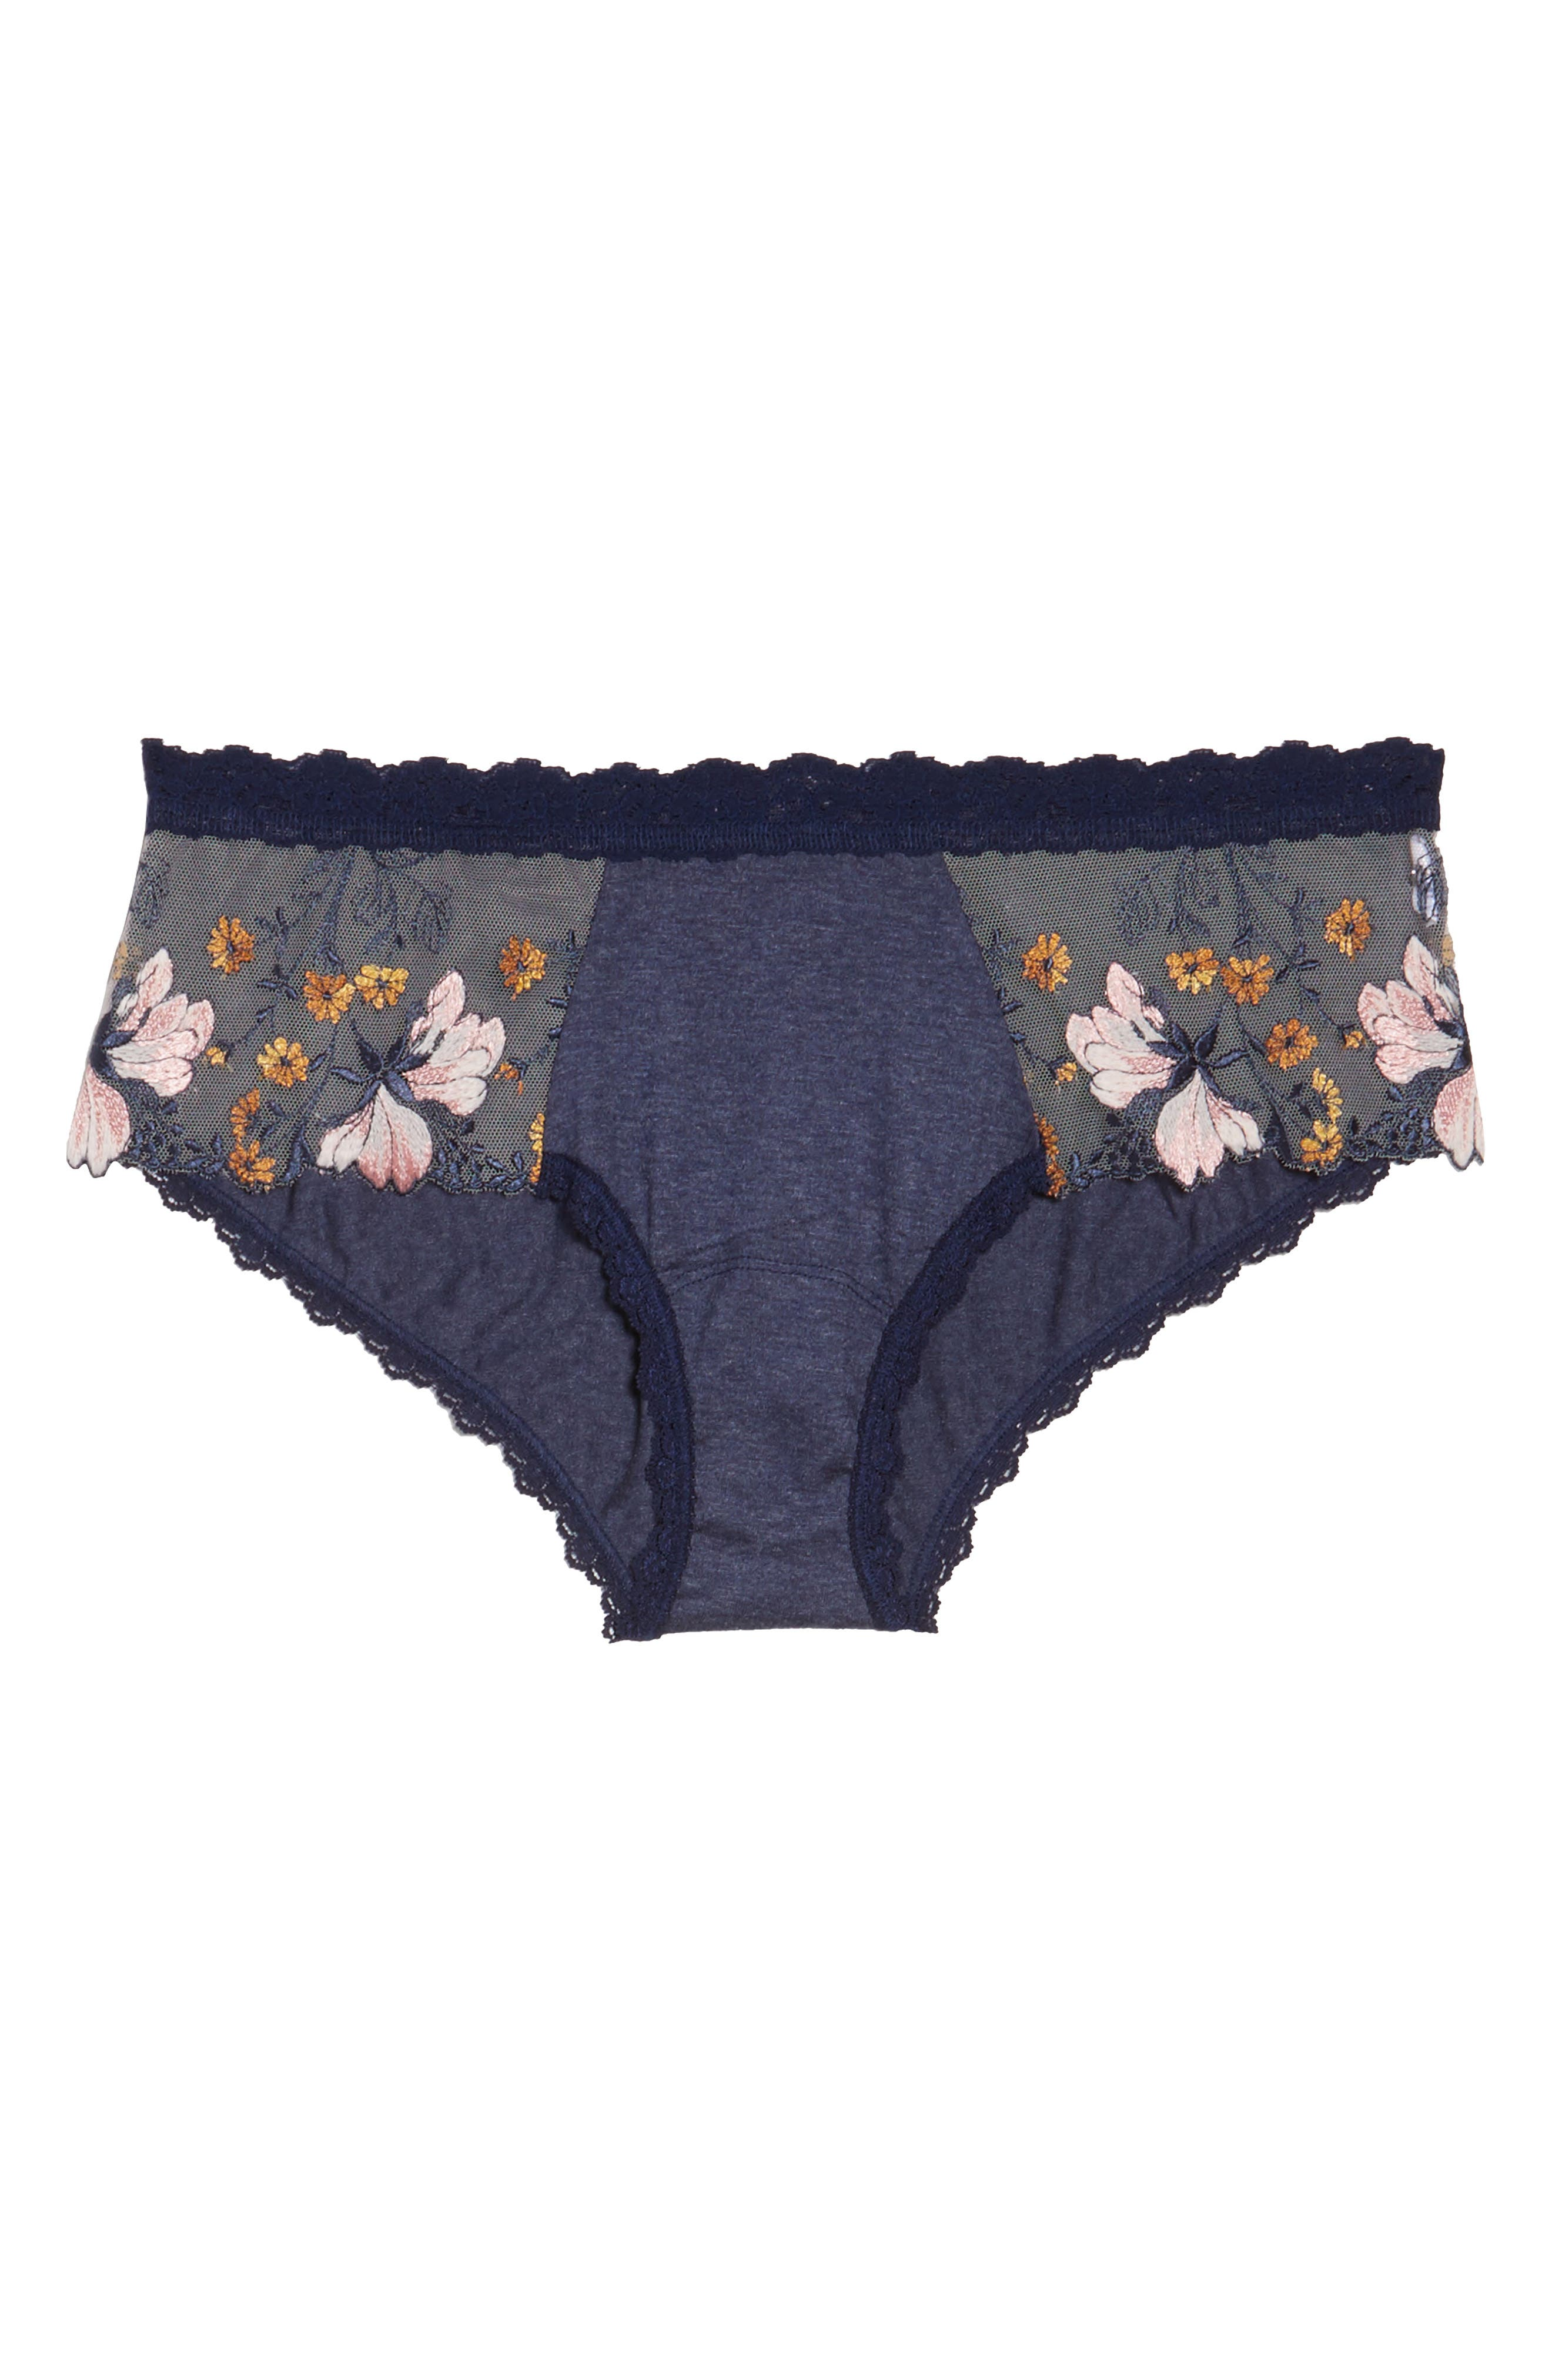 Embroidered Hipster Briefs,                             Alternate thumbnail 5, color,                             411